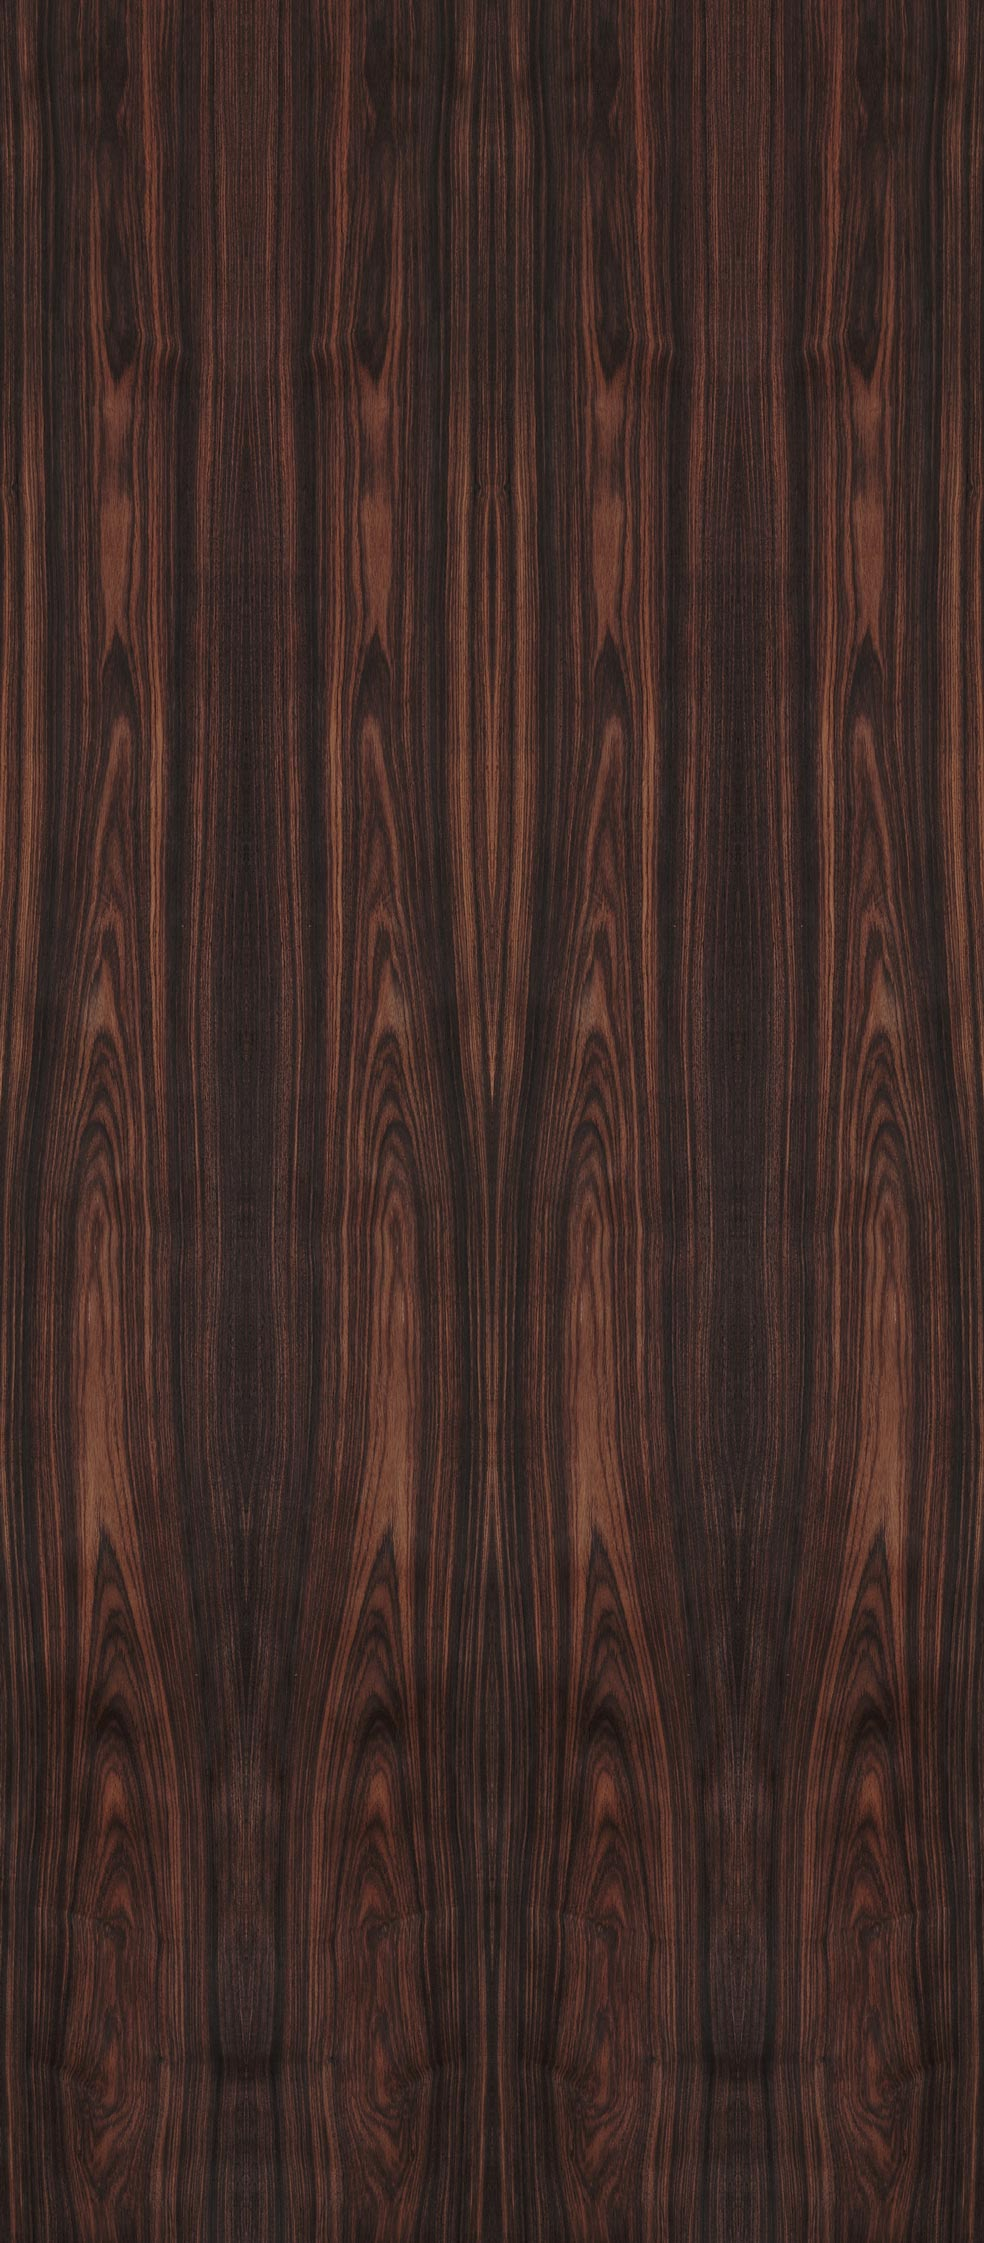 Rosewood East Indian Veneer Dooge Veneers